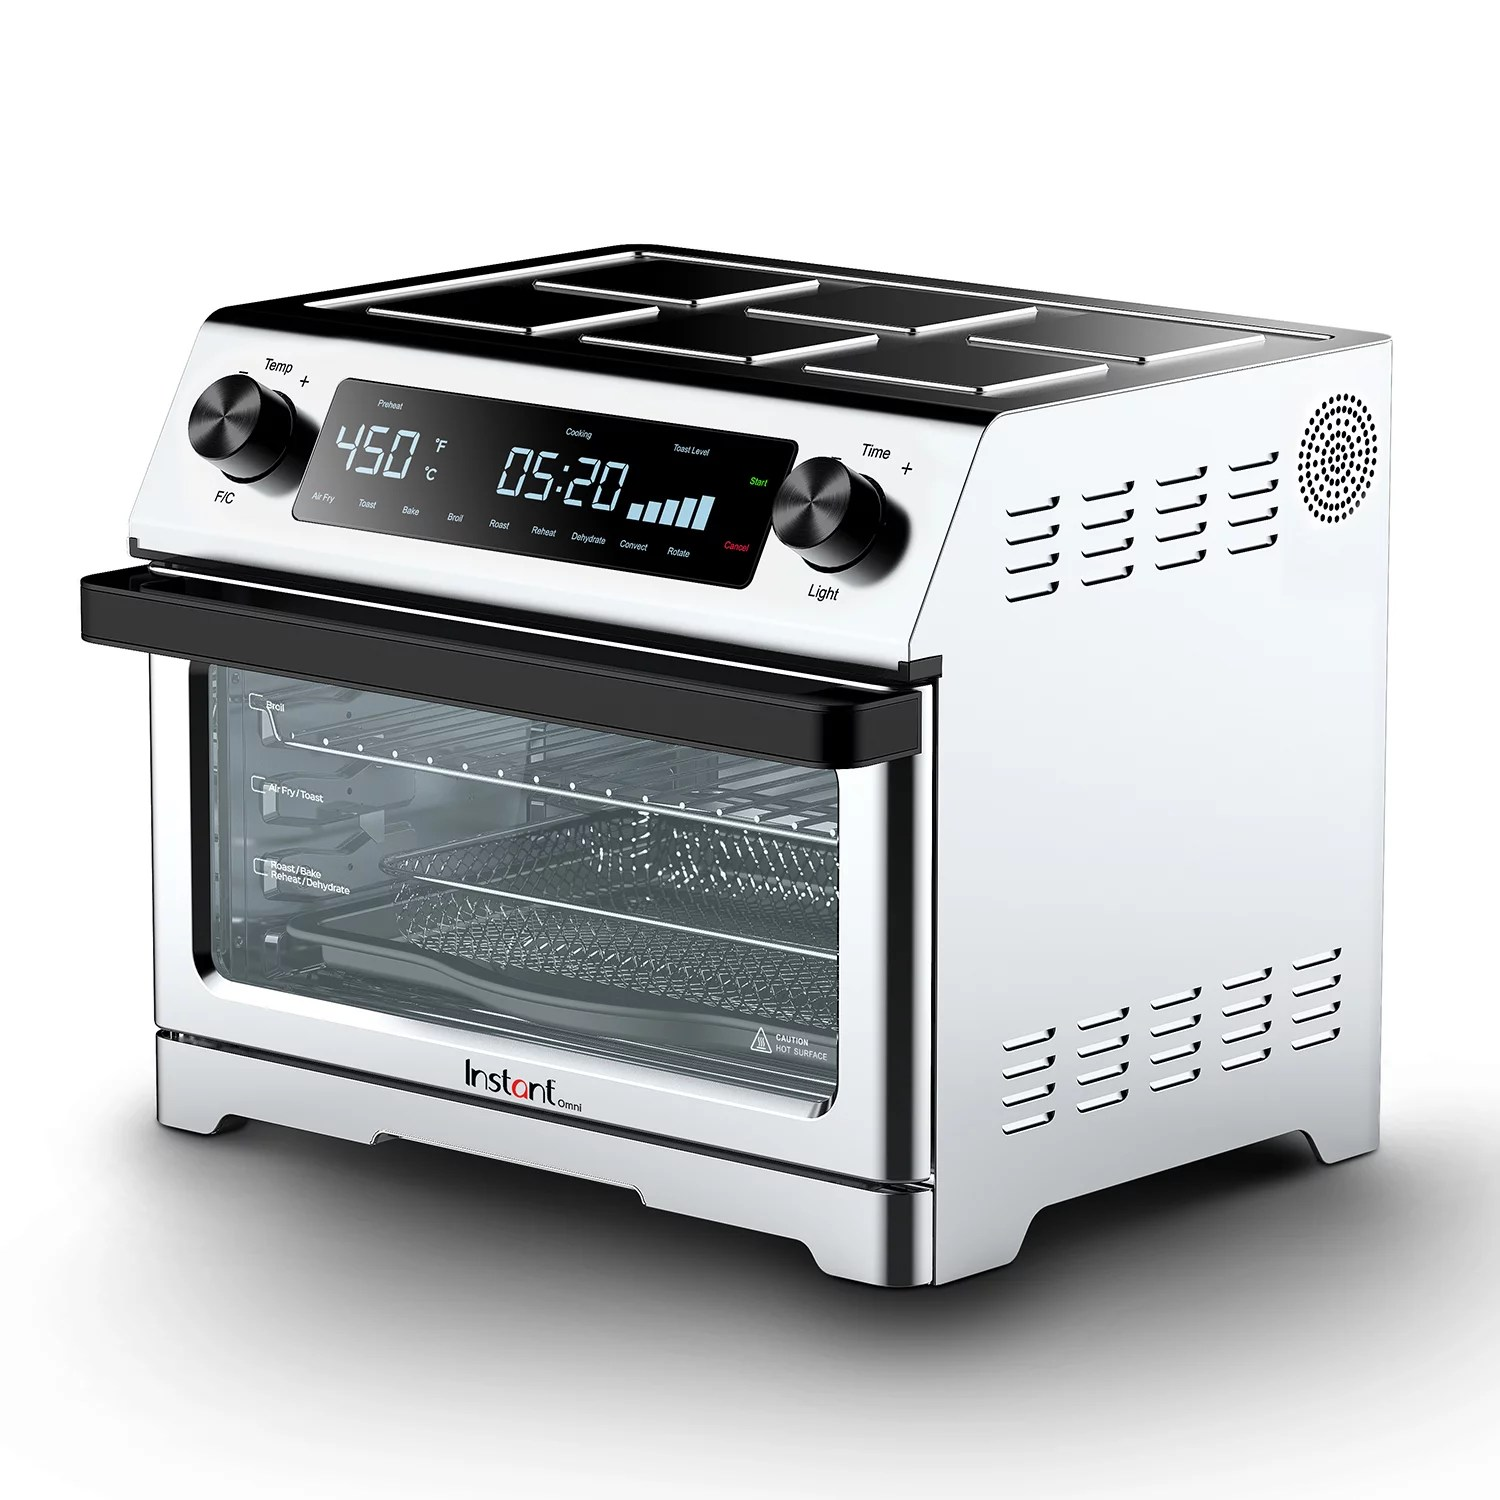 instant omni 9 in 1 toaster oven with air fry dehydrate toast roast bake broil and reheat features